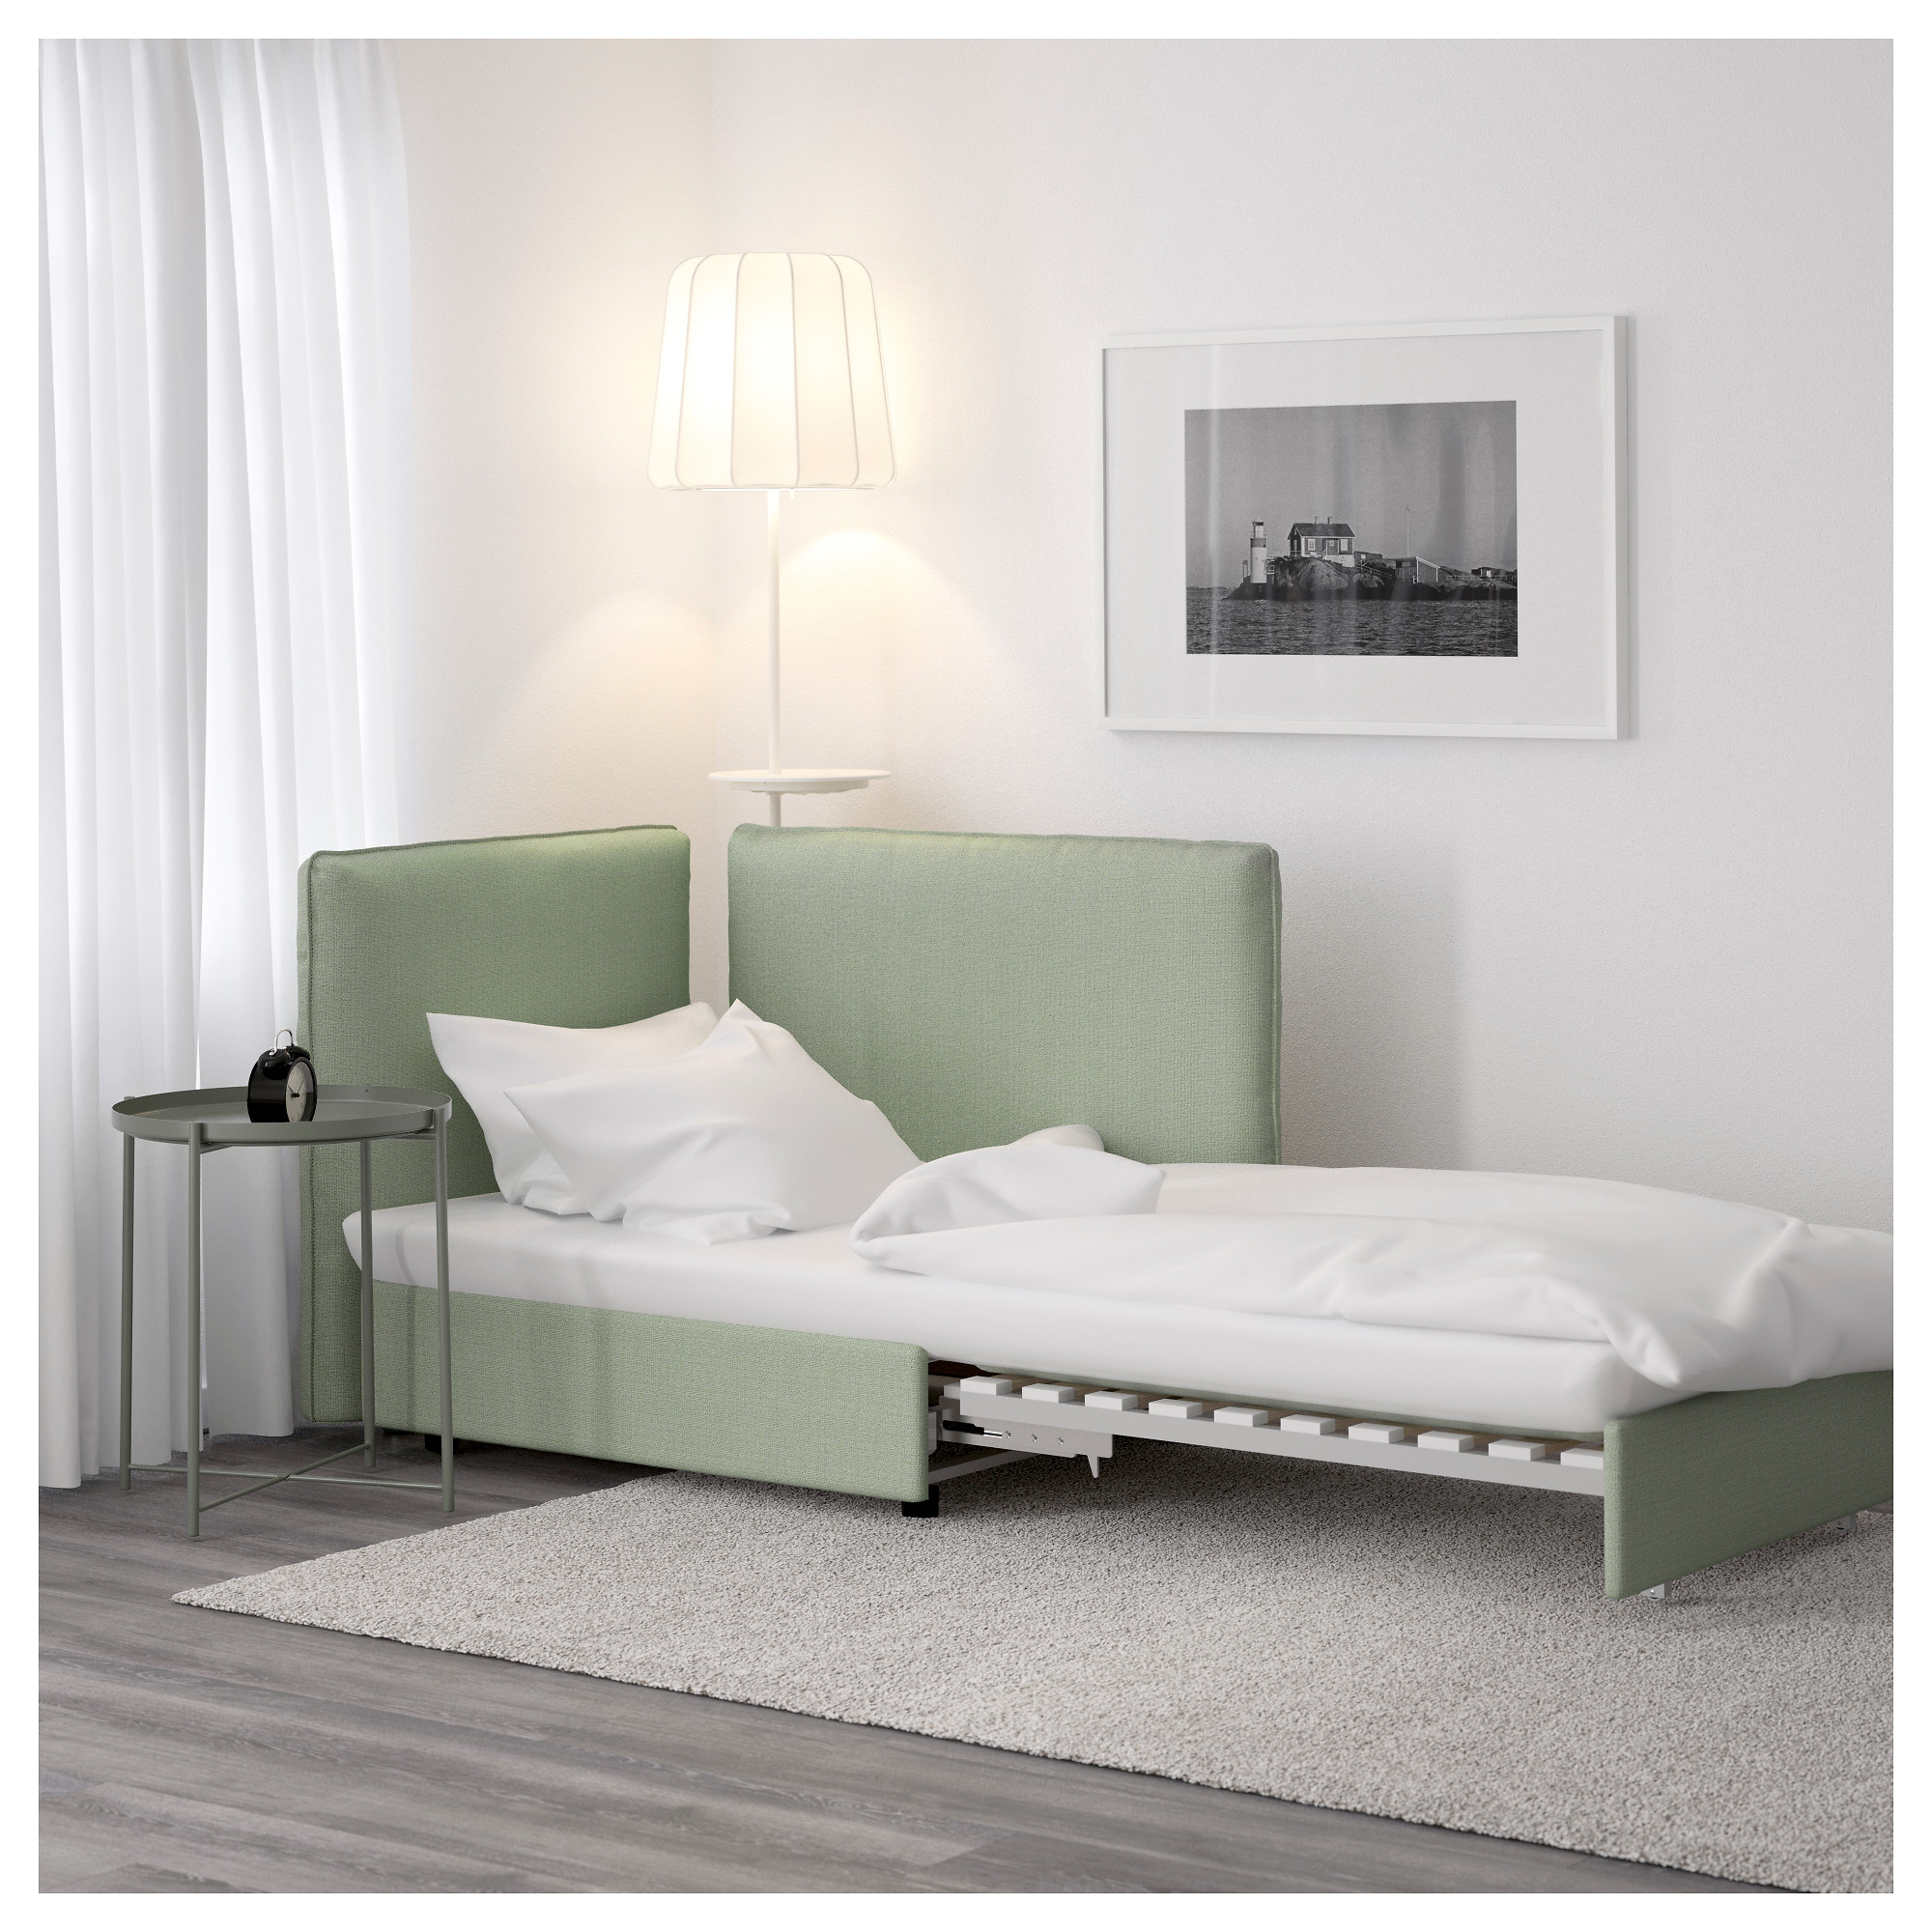 VALLENTUNA Seat module with bed and backrest Hillared green IKEA